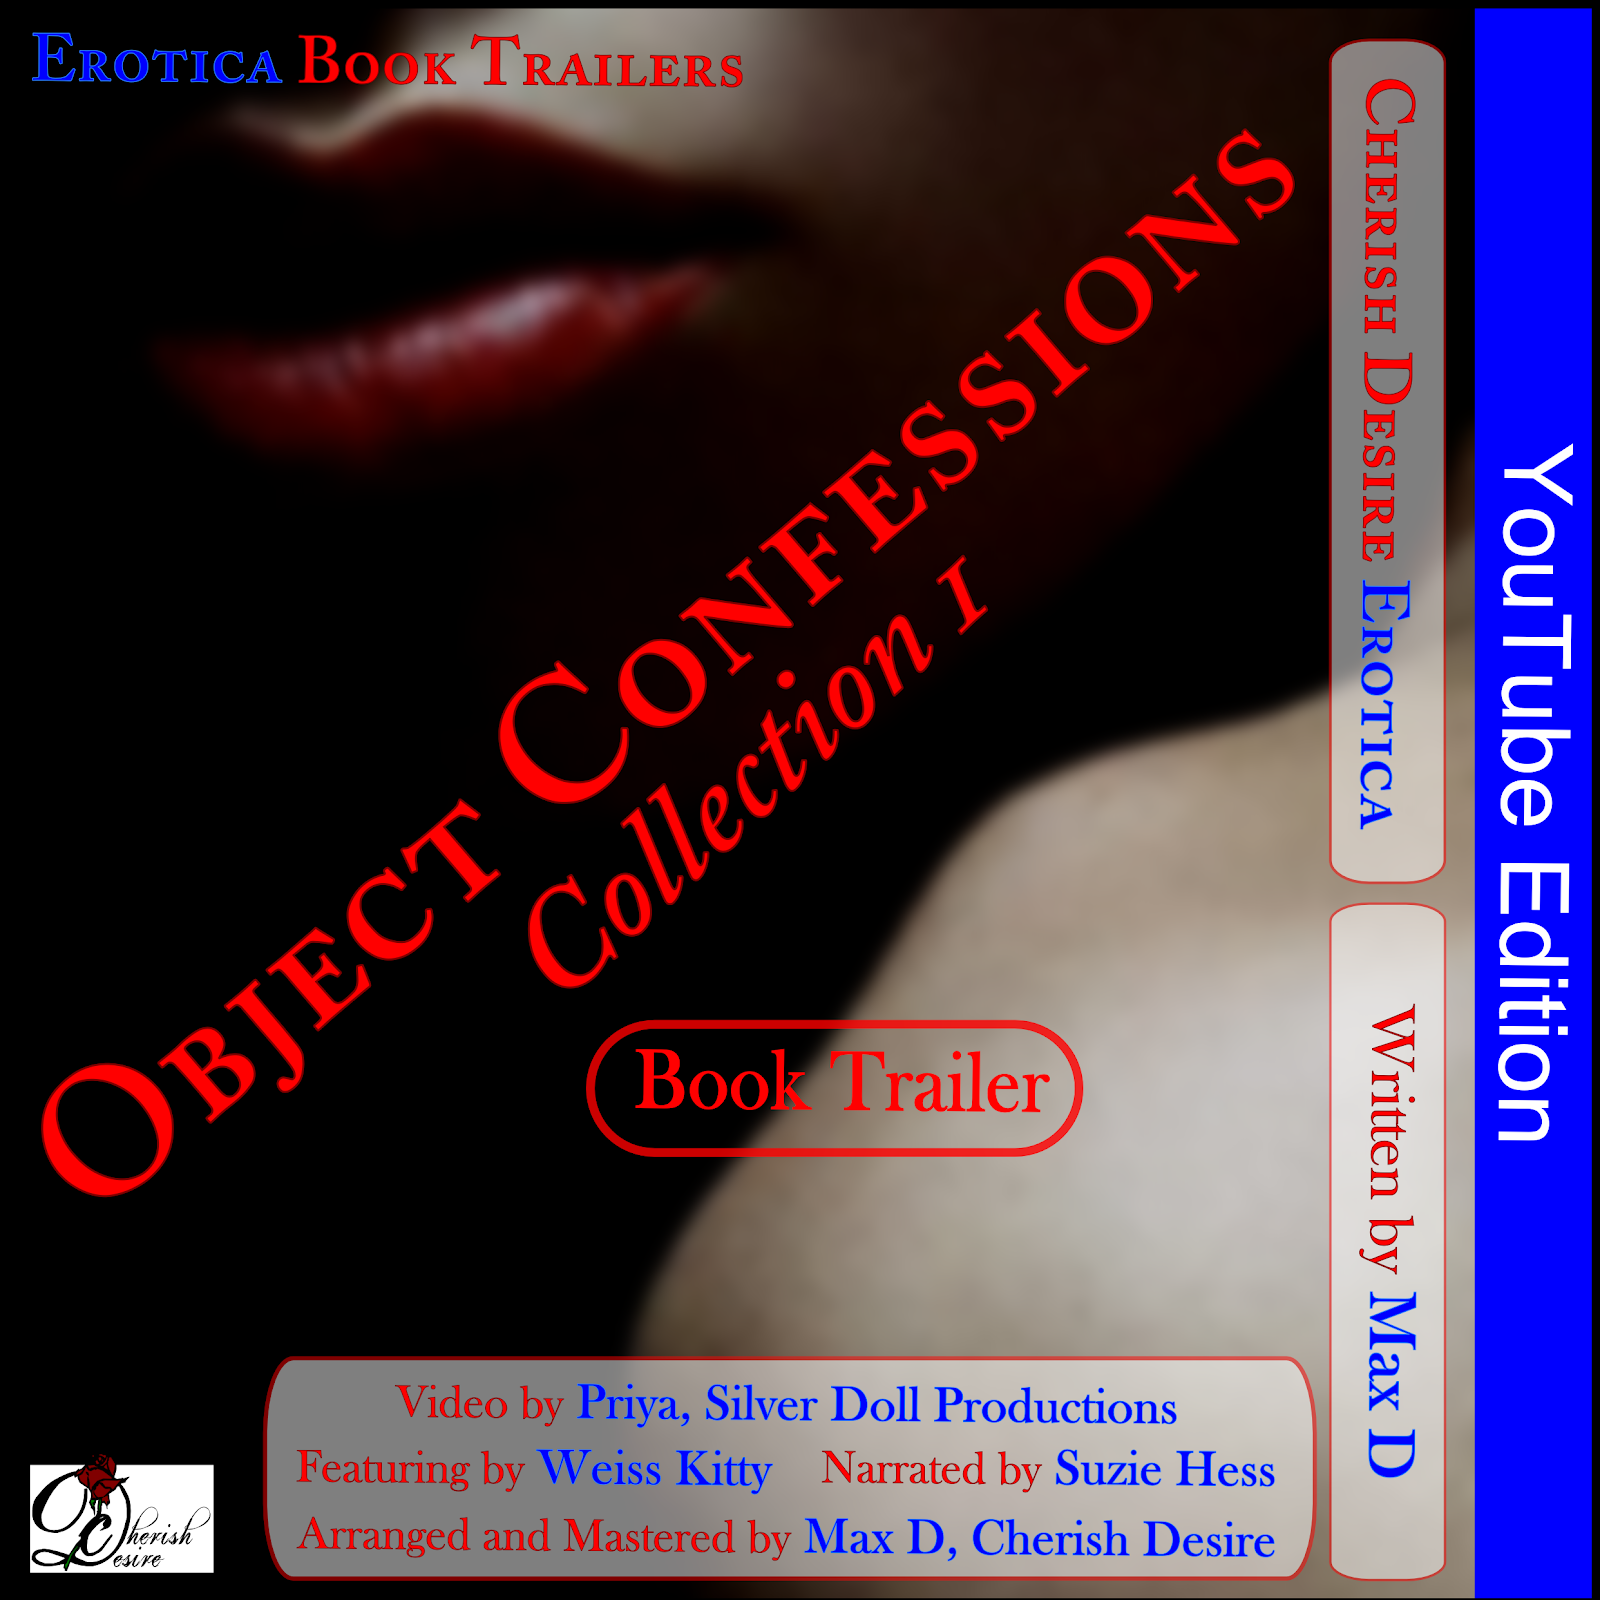 Cherish Desire Singles: Object Confessions Collection 1, YouTube Book Trailer, Max D, erotica